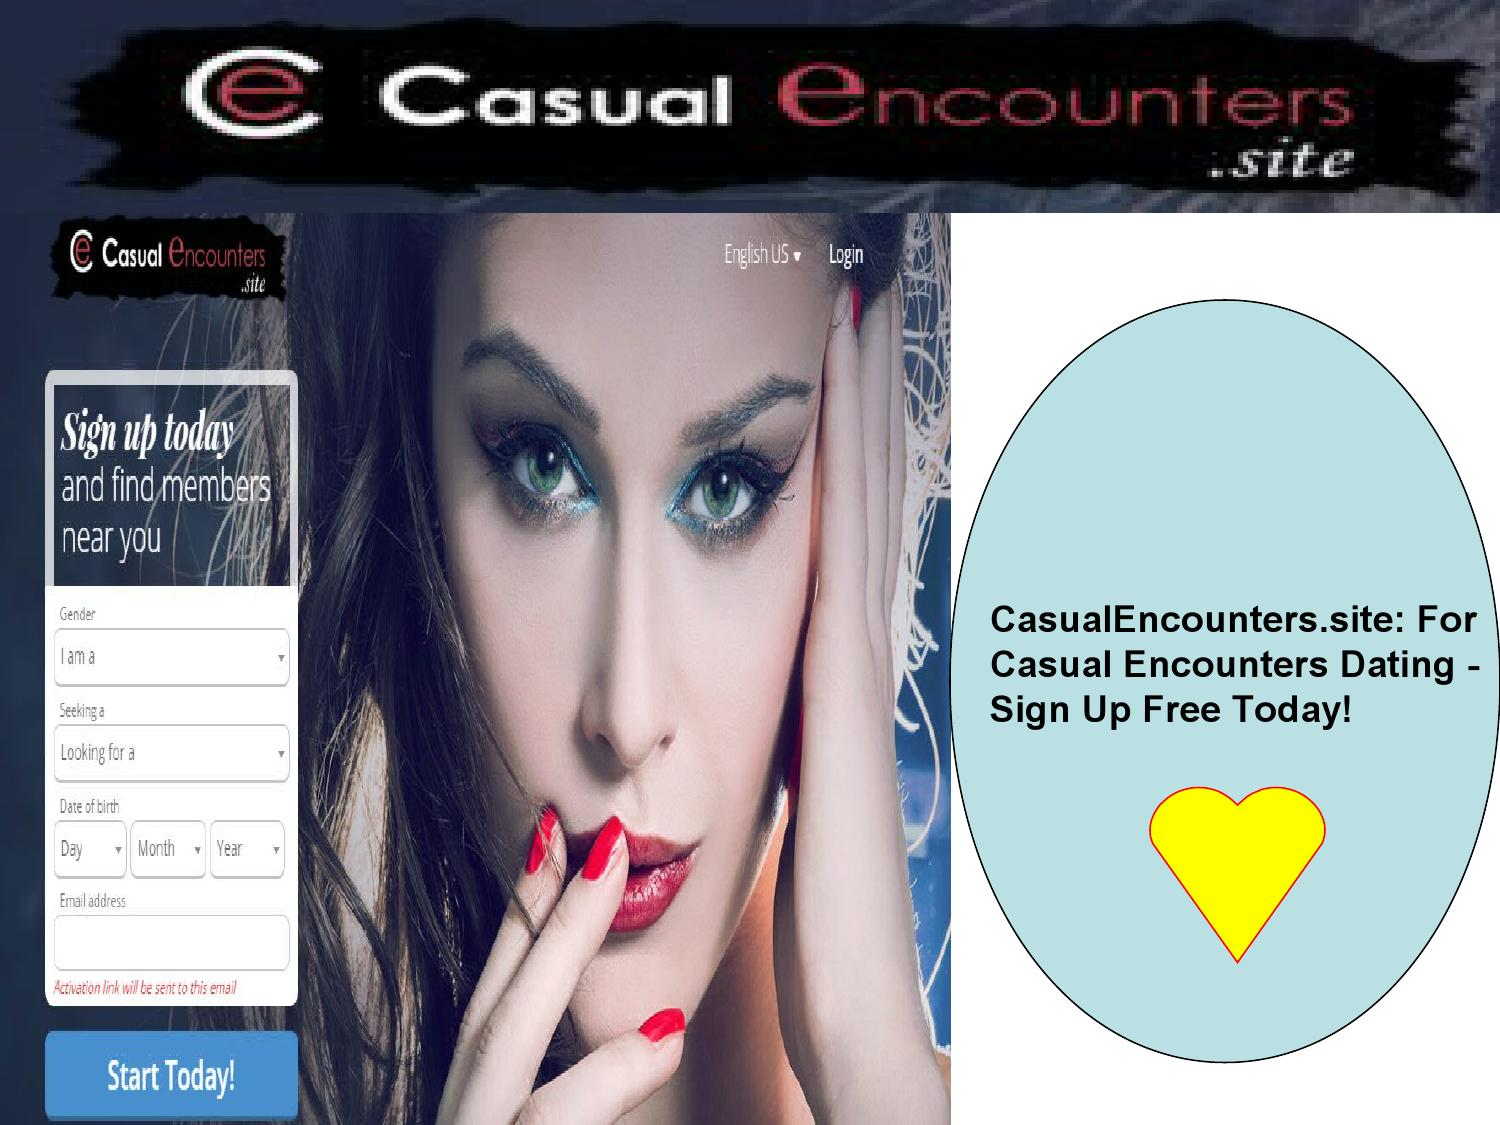 Casual encounters site